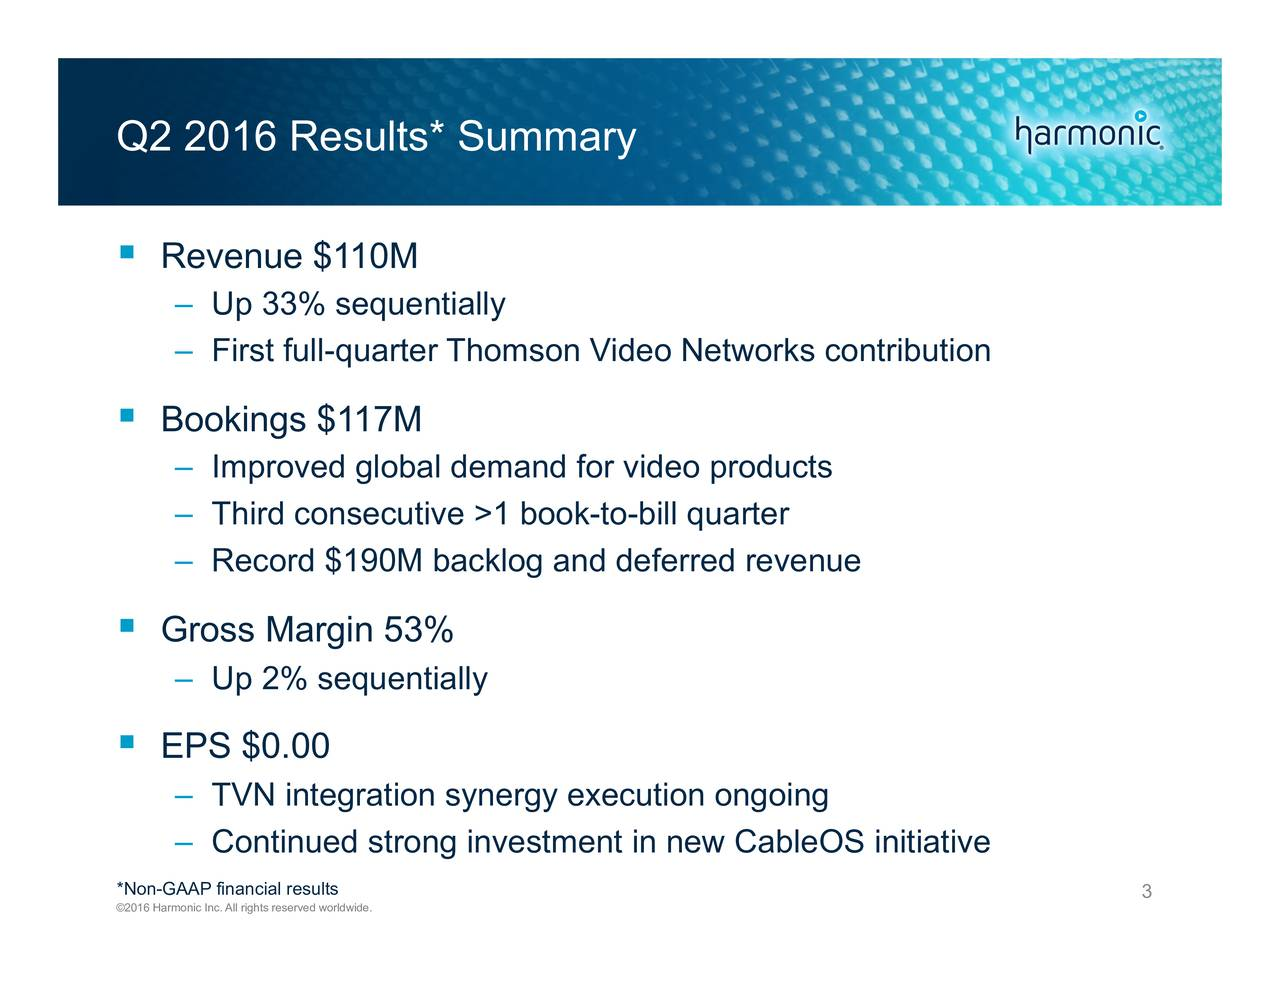 Revenue $110M Up 33% sequentially First full-quarter Thomson Video Networks contribution Bookings $117M Improved global demand for video products Third consecutive >1 book-to-bill quarter Record $190M backlog and deferred revenue Gross Margin 53% Up 2% sequentially EPS $0.00 TVN integration synergy execution ongoing Continued strong investment in new CableOS initiative *Non-GAAP financial results 3 2016 Harmonic Inc. All rights reserved worldwide.